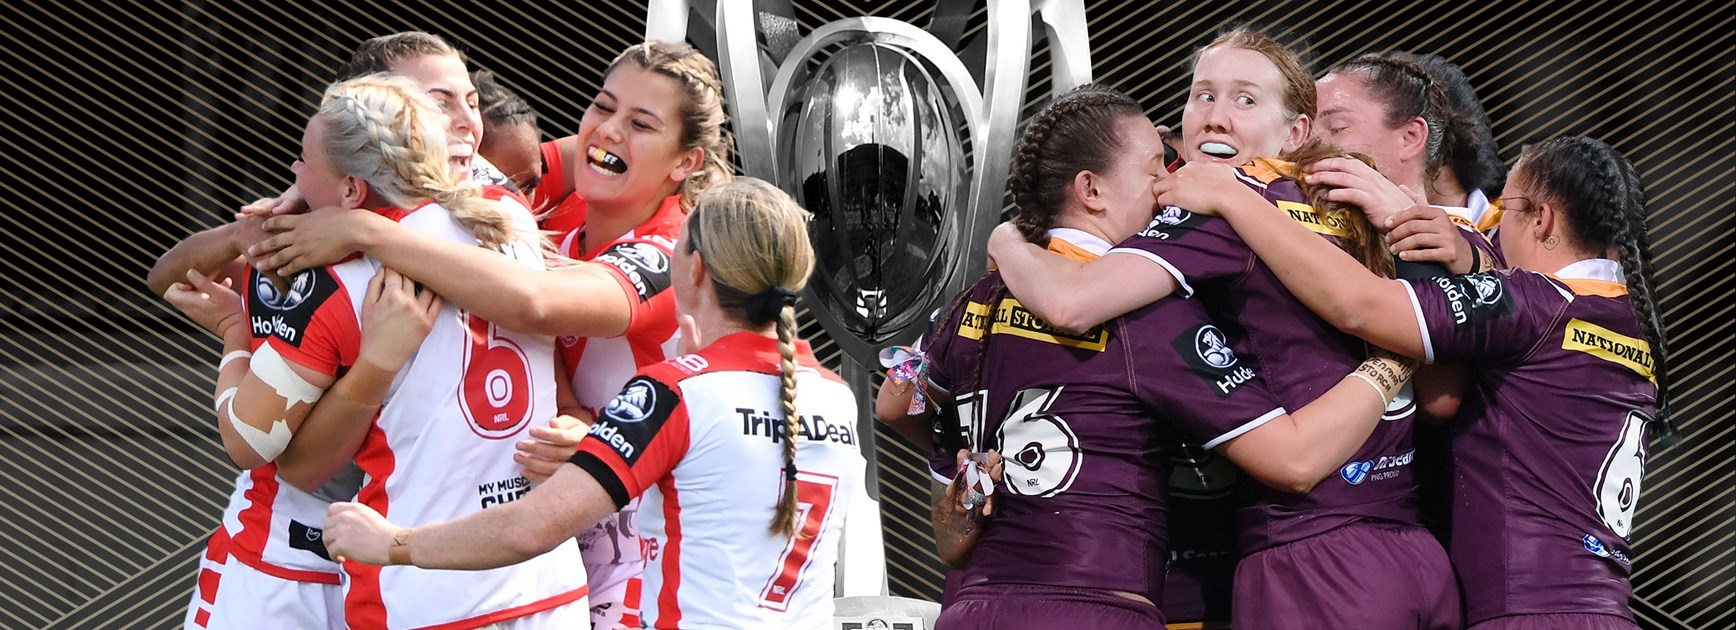 NRLW grand final winner: the experts at NRL.com have their say